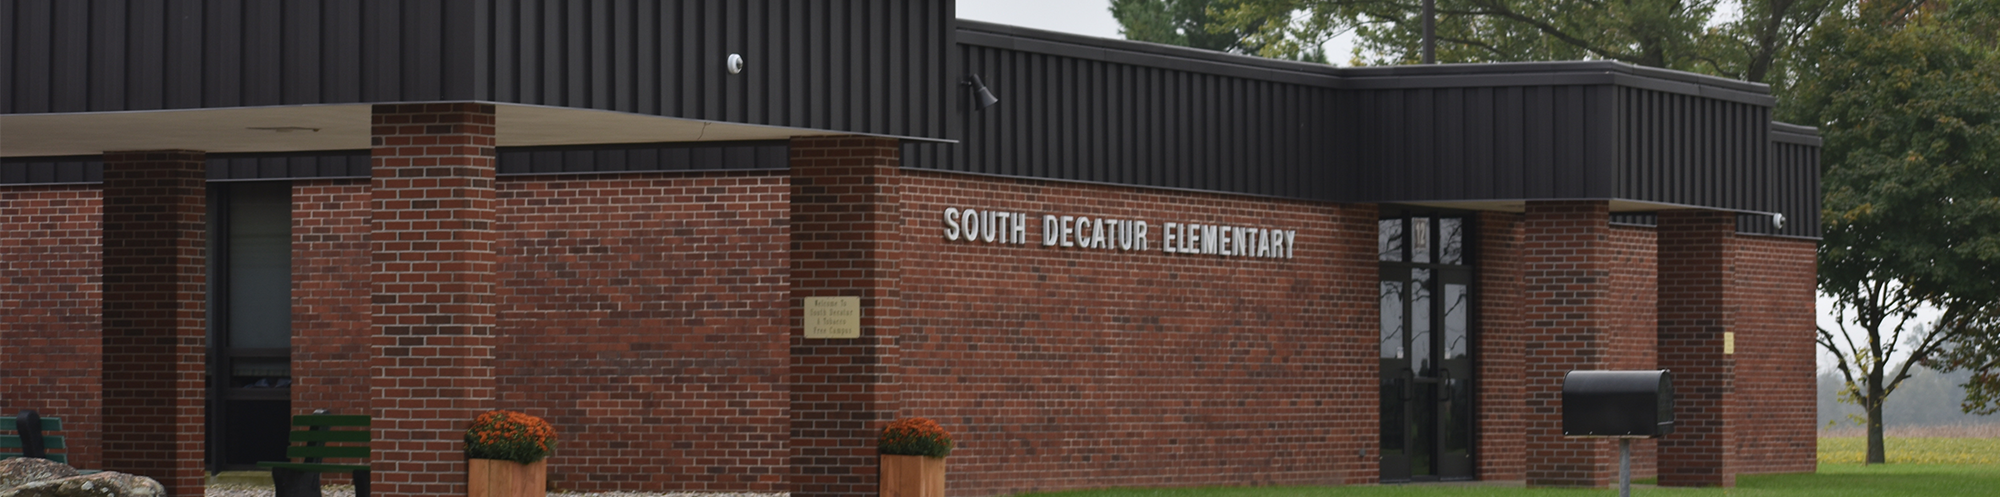 Front view of South Decatur Elementary